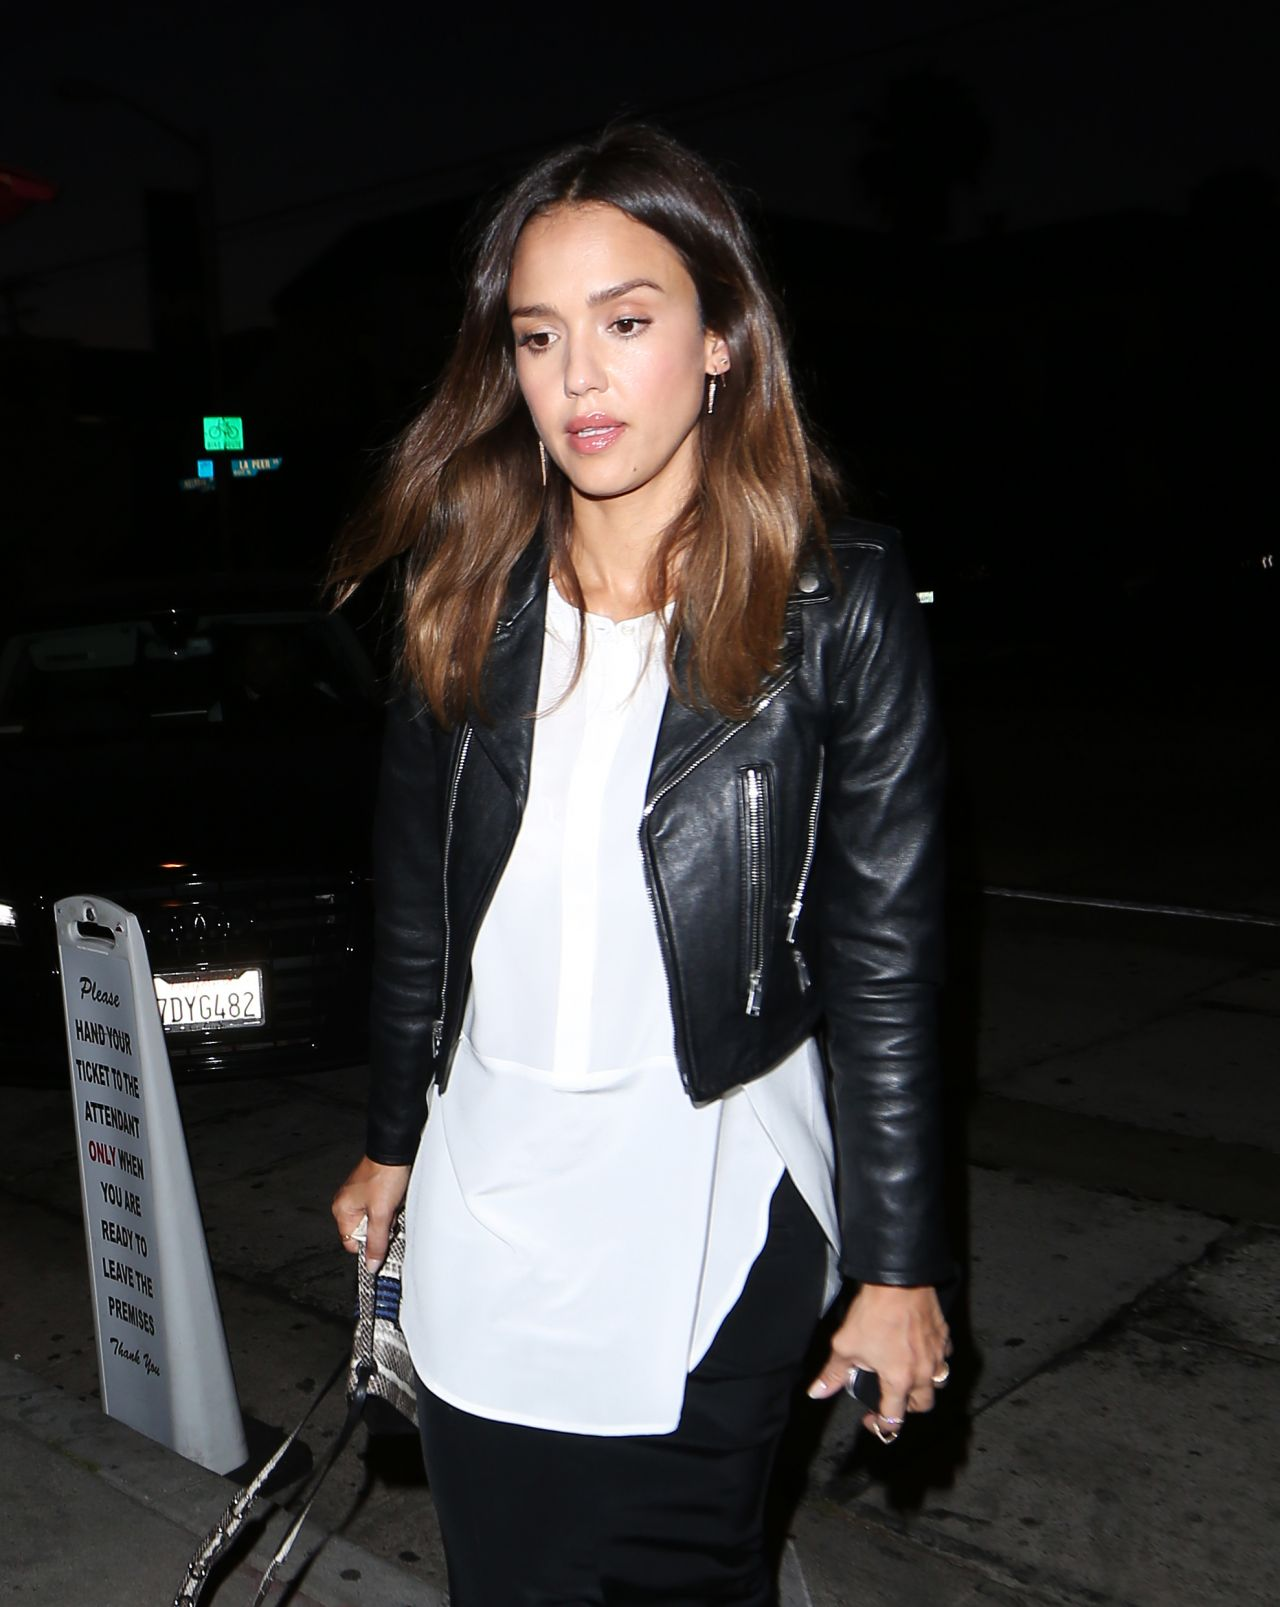 http://celebmafia.com/wp-content/uploads/2016/06/jessica-alba-outfit-ideas-leaving-craig-s-restaurant-in-los-angeles-6-2-2016-10.jpg